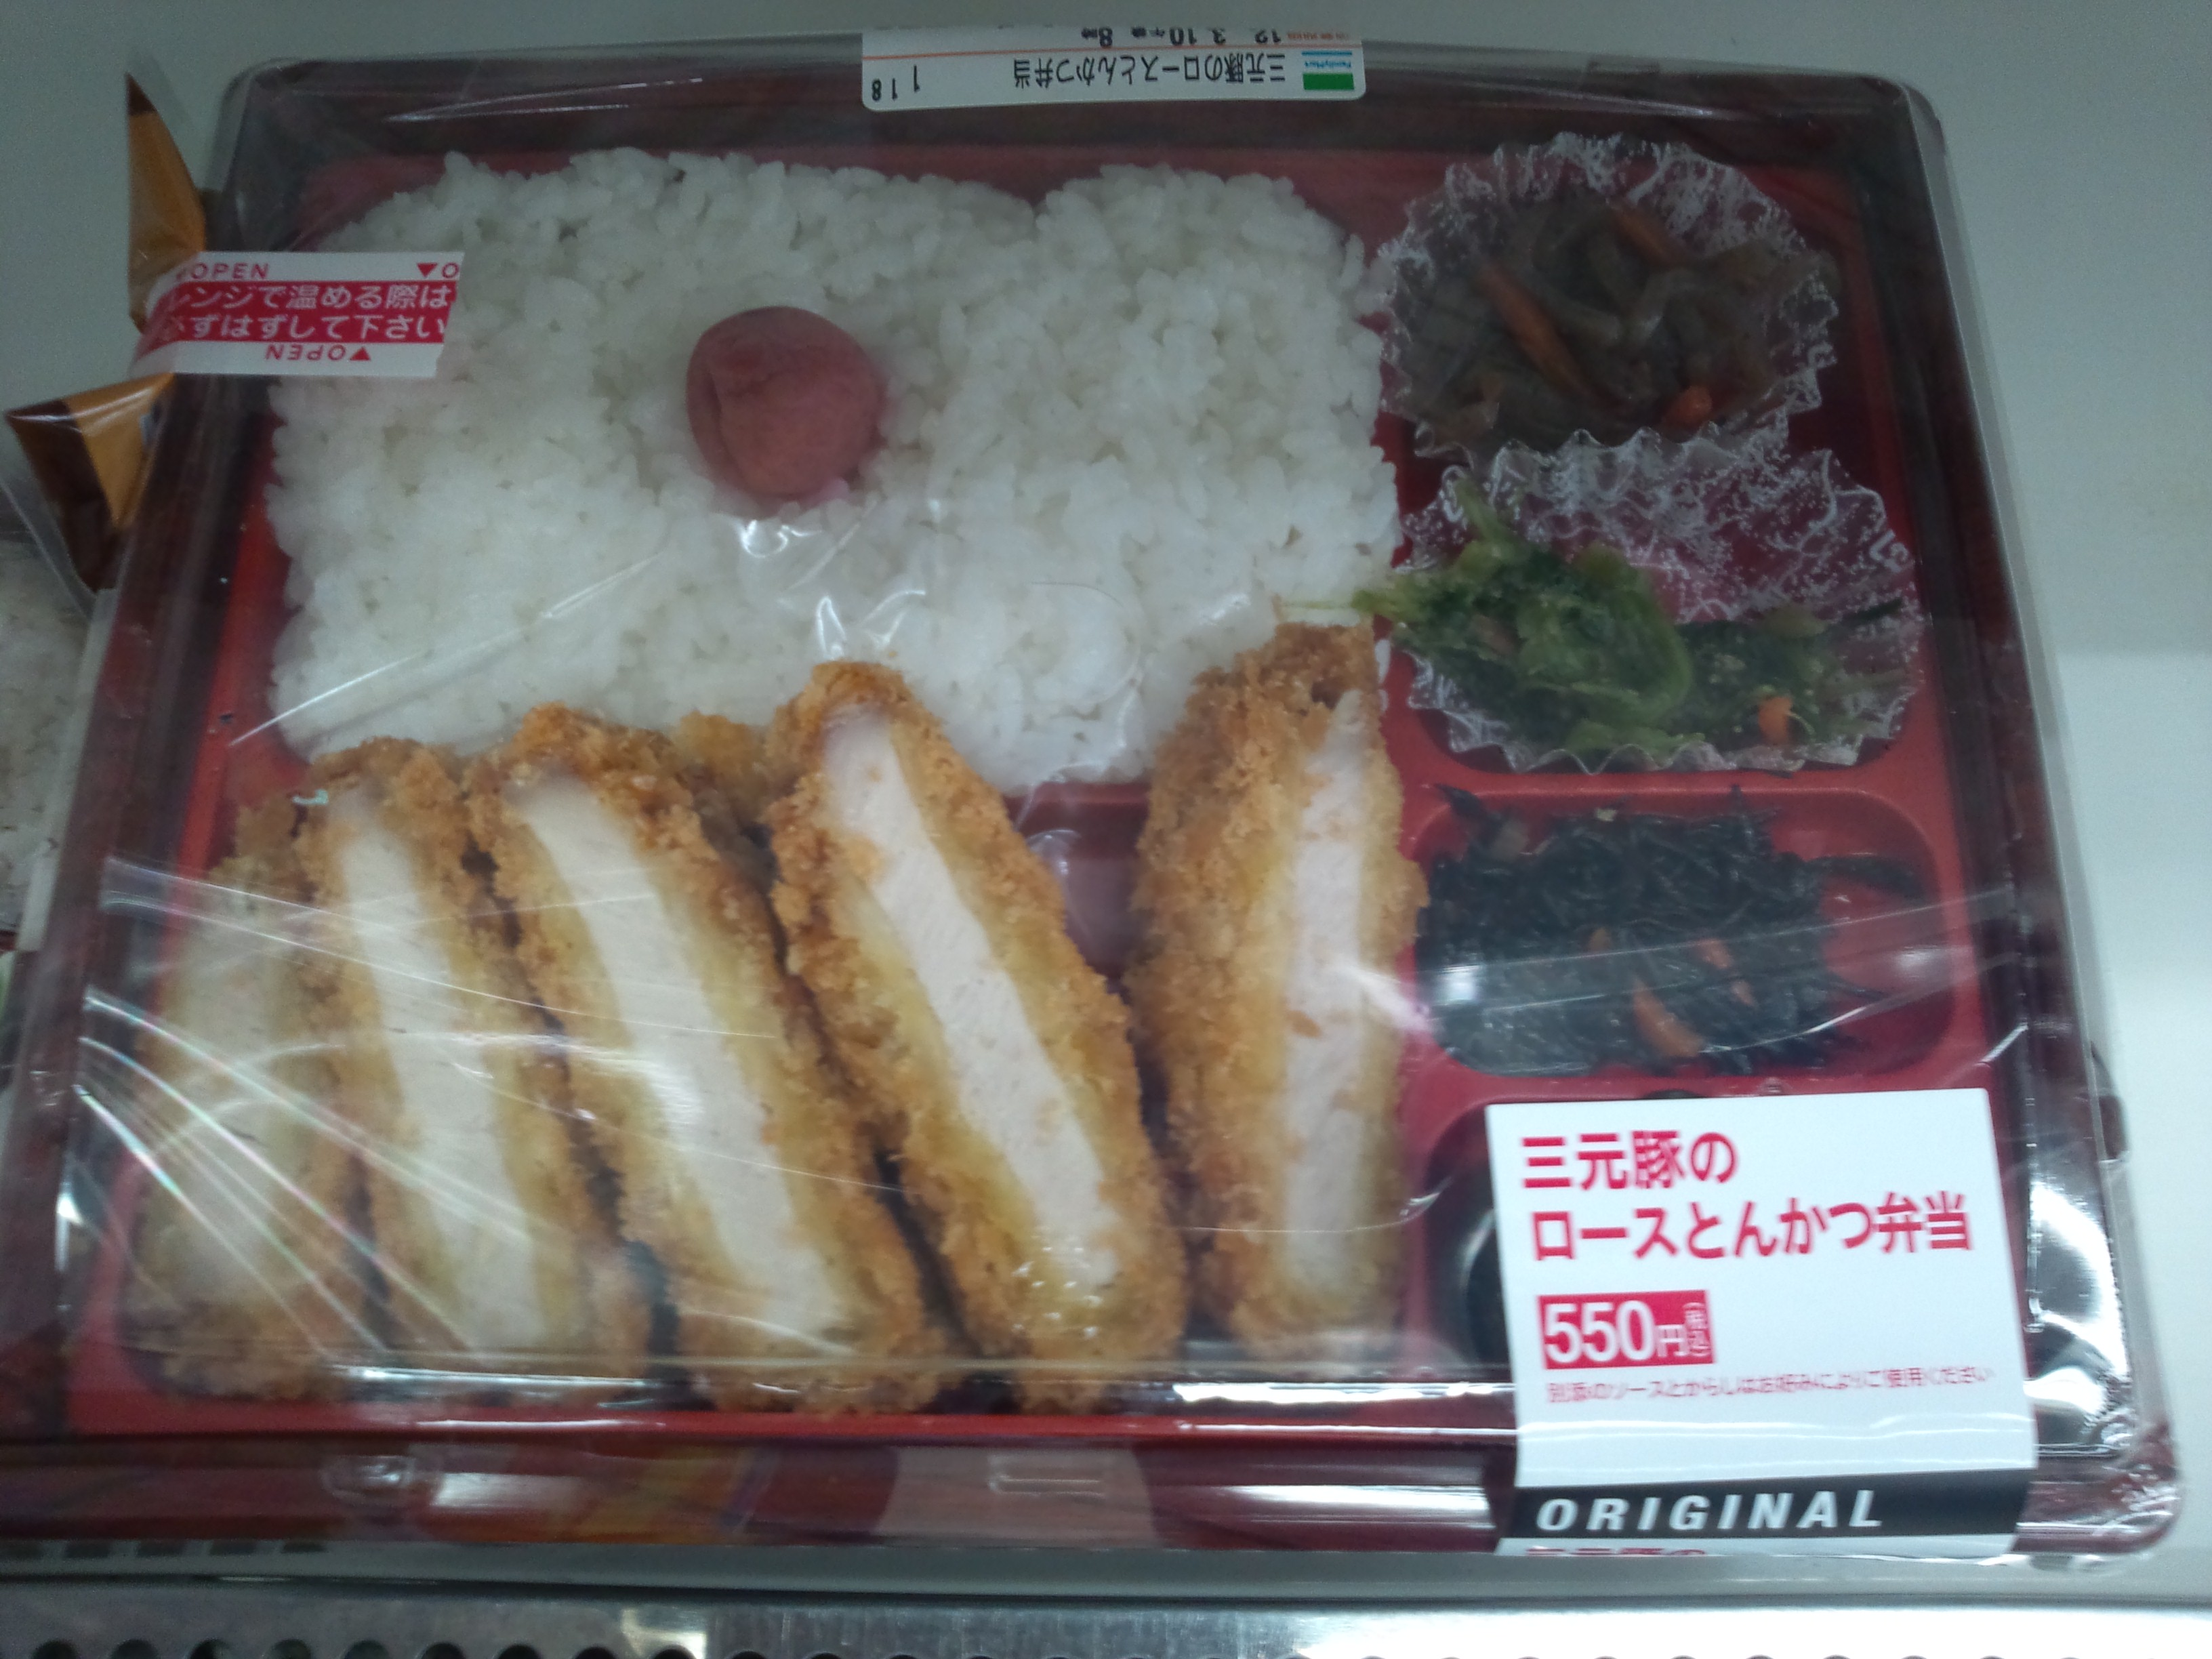 Eat tonkatsu and perk yourself up!